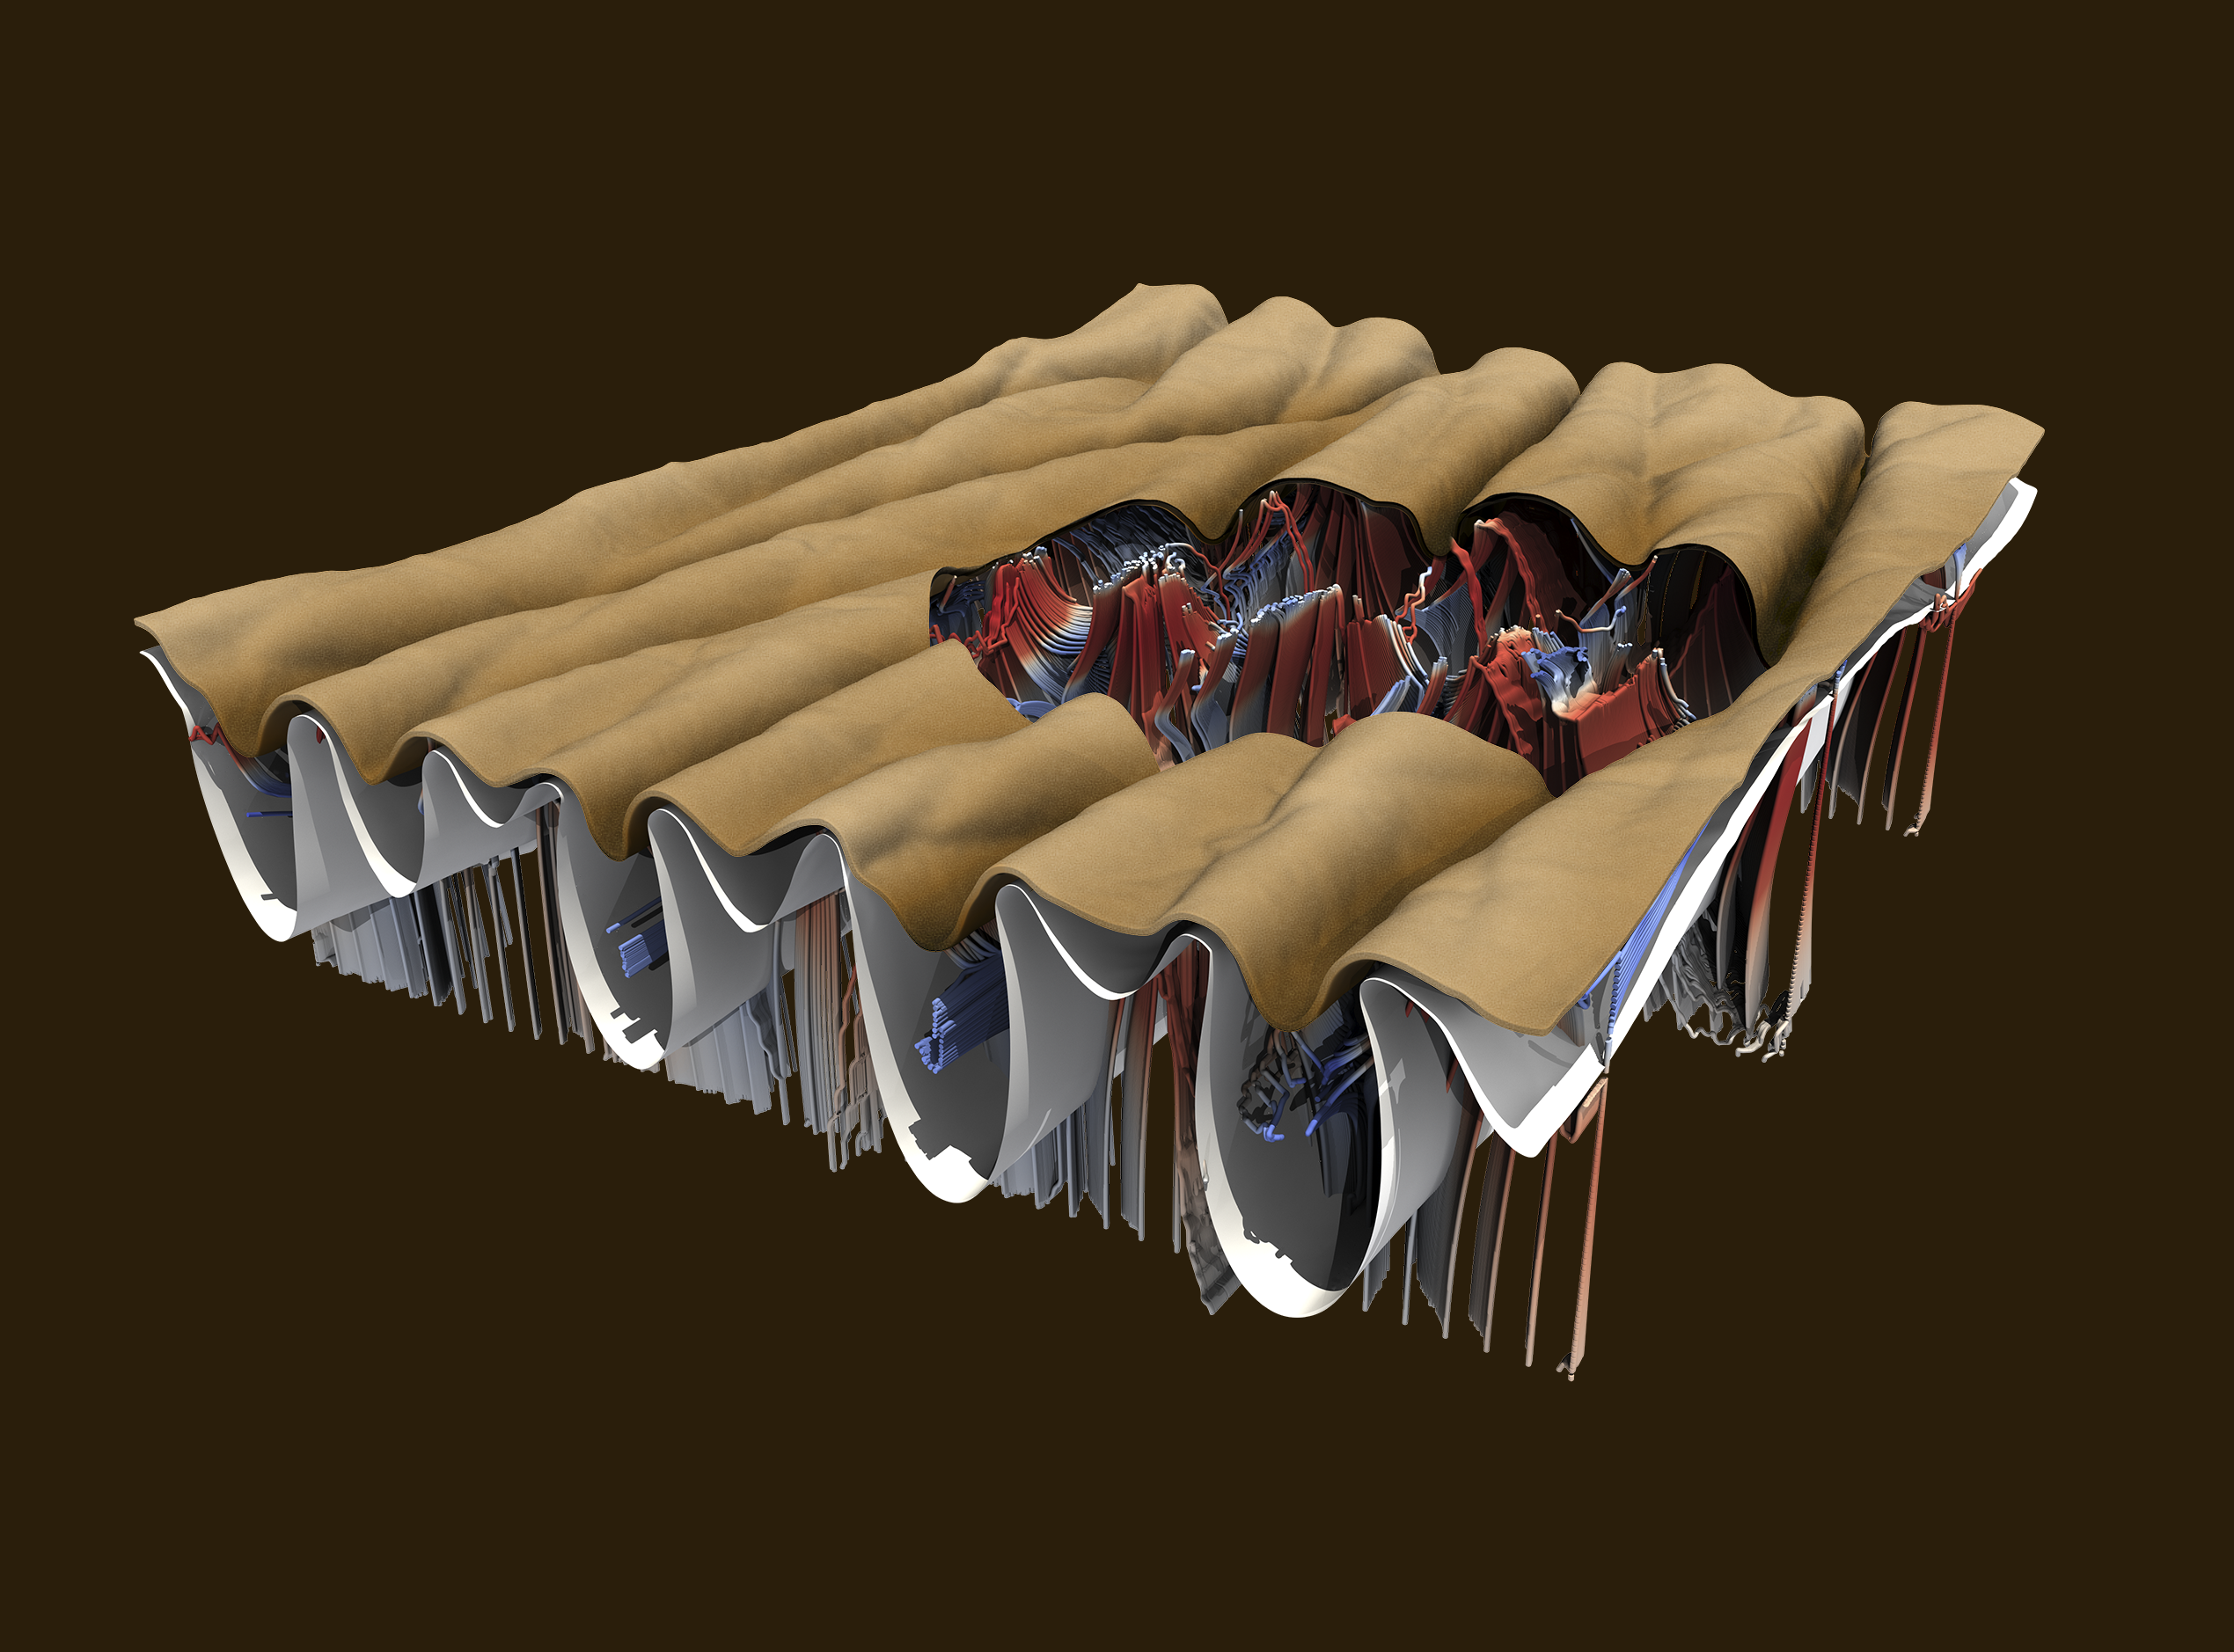 Finite element simulations of micro-wrinkle formation in human skin.